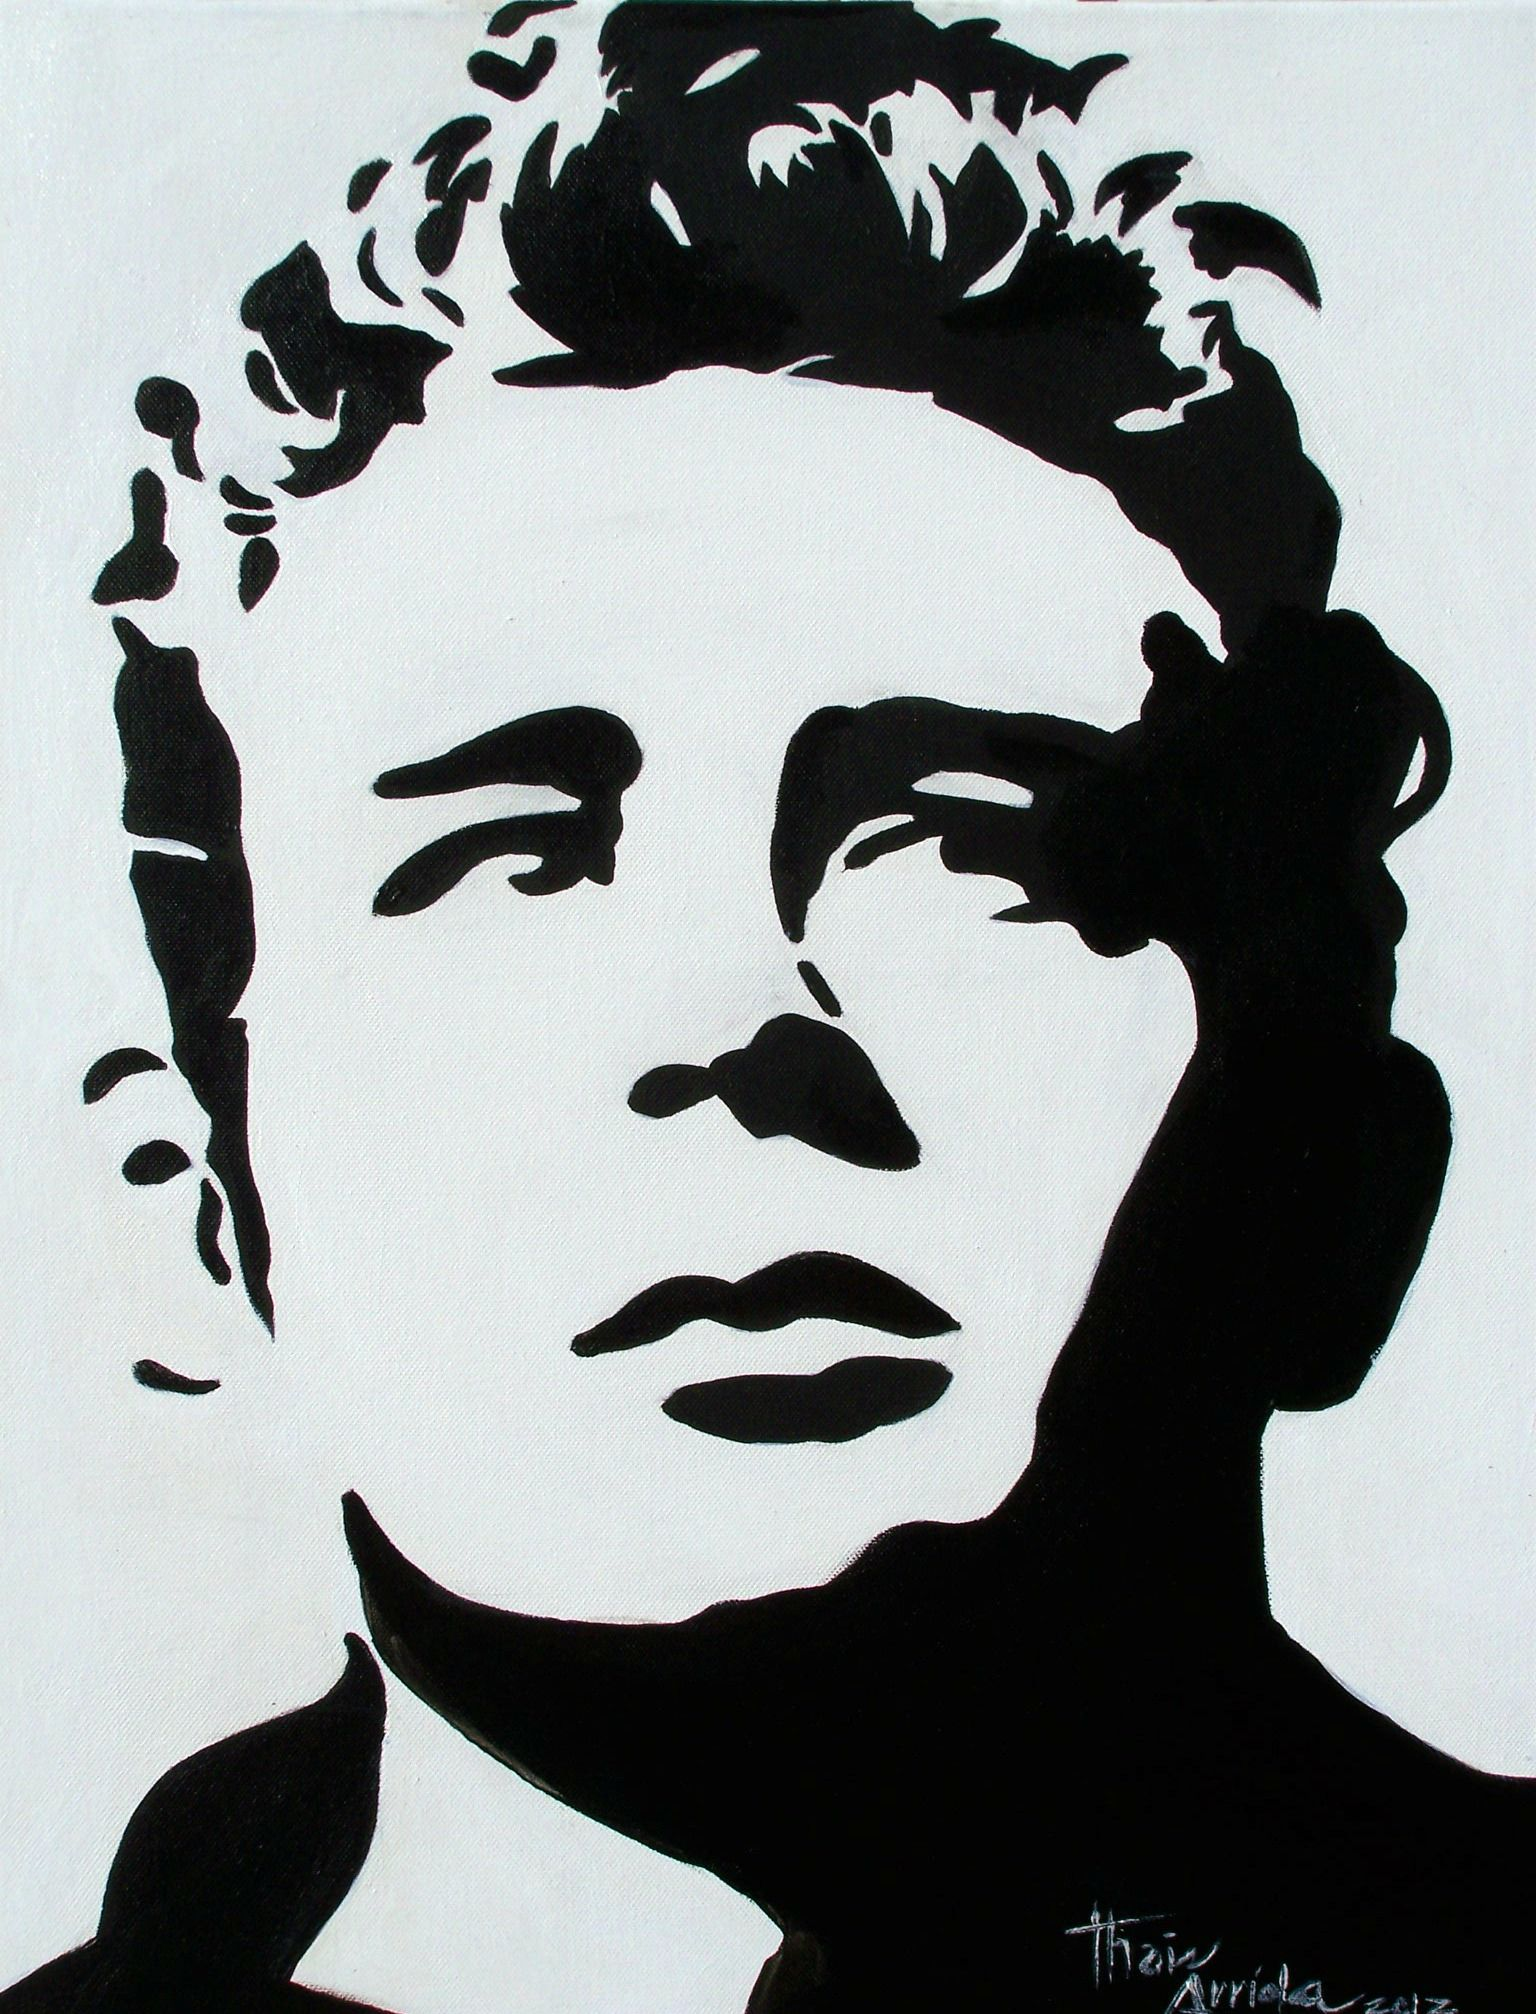 James dean pop art face stencil art stencils silhouette art pyrography